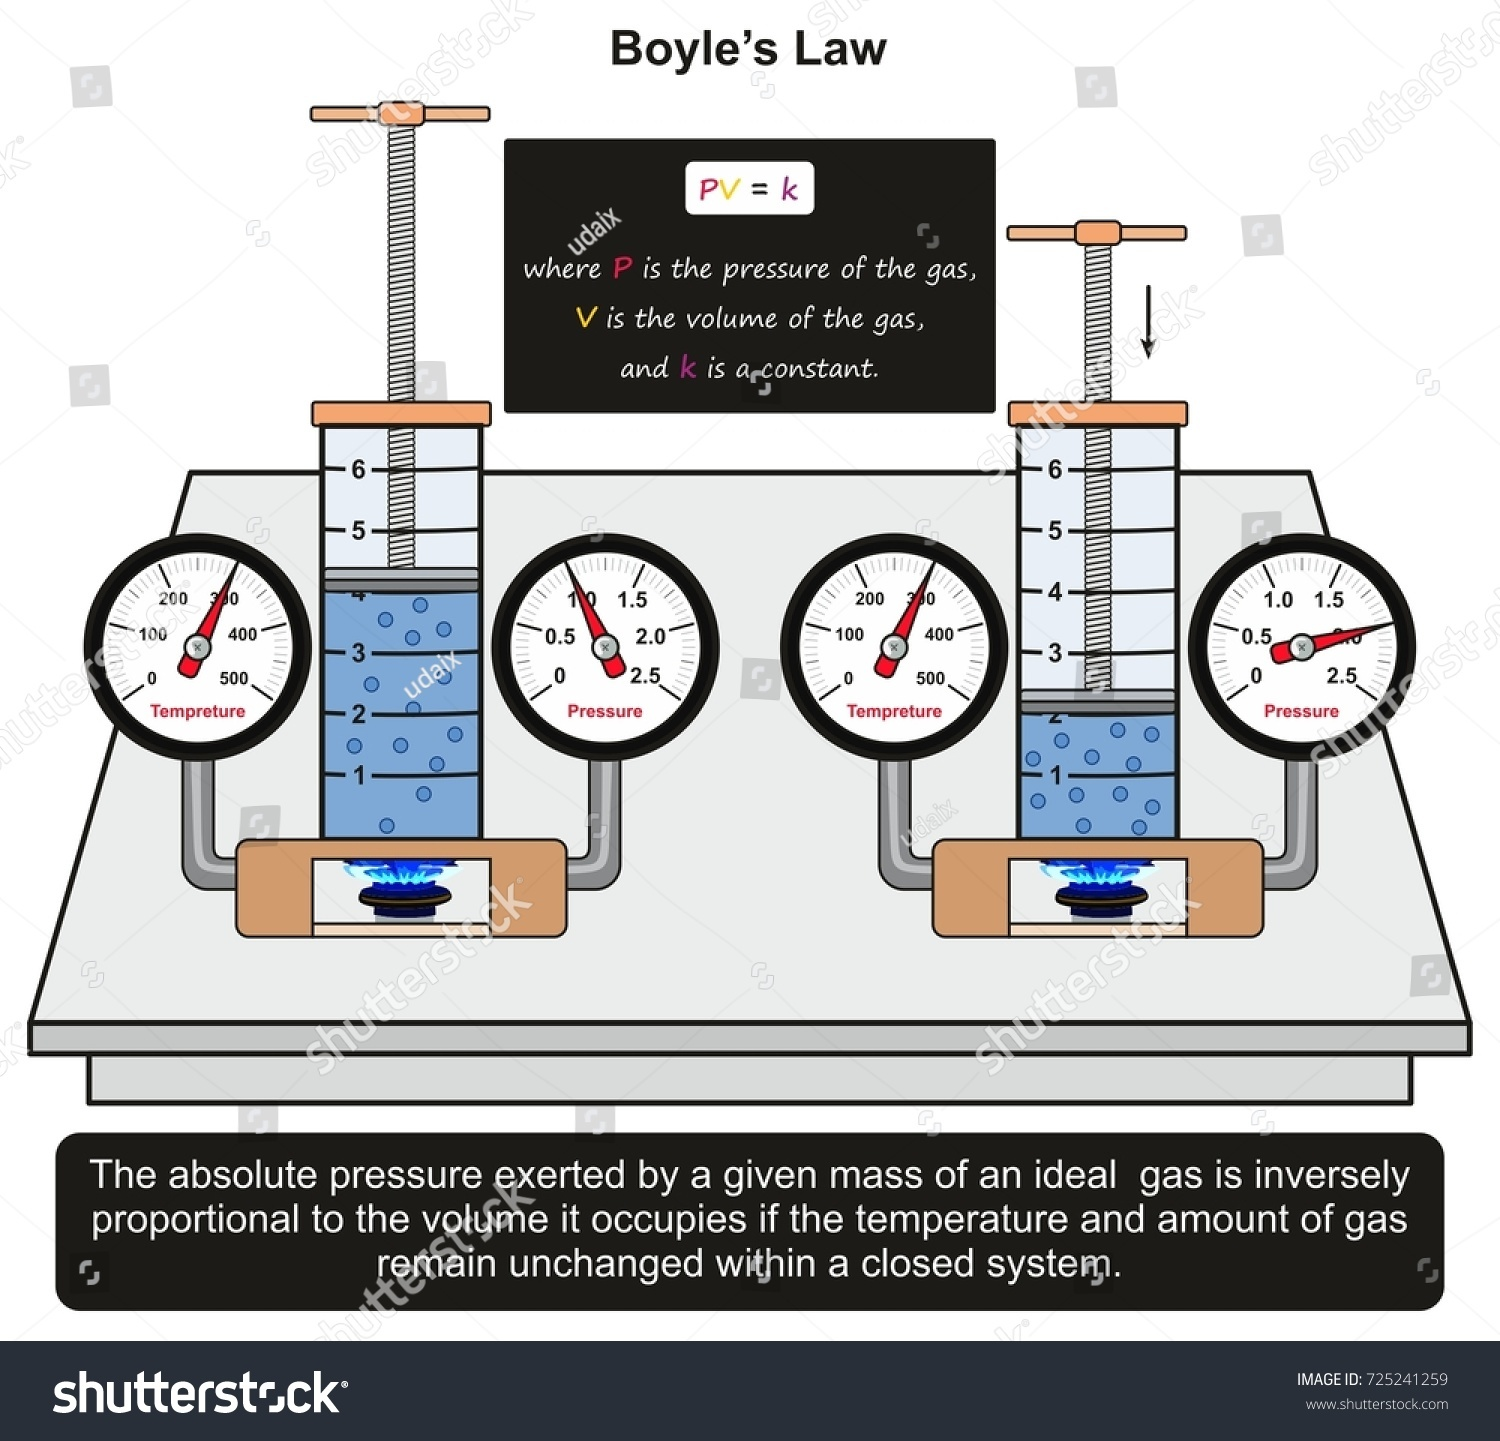 hight resolution of boyle s law infographic diagram with an example in a lab experiment showing constant relation between gas